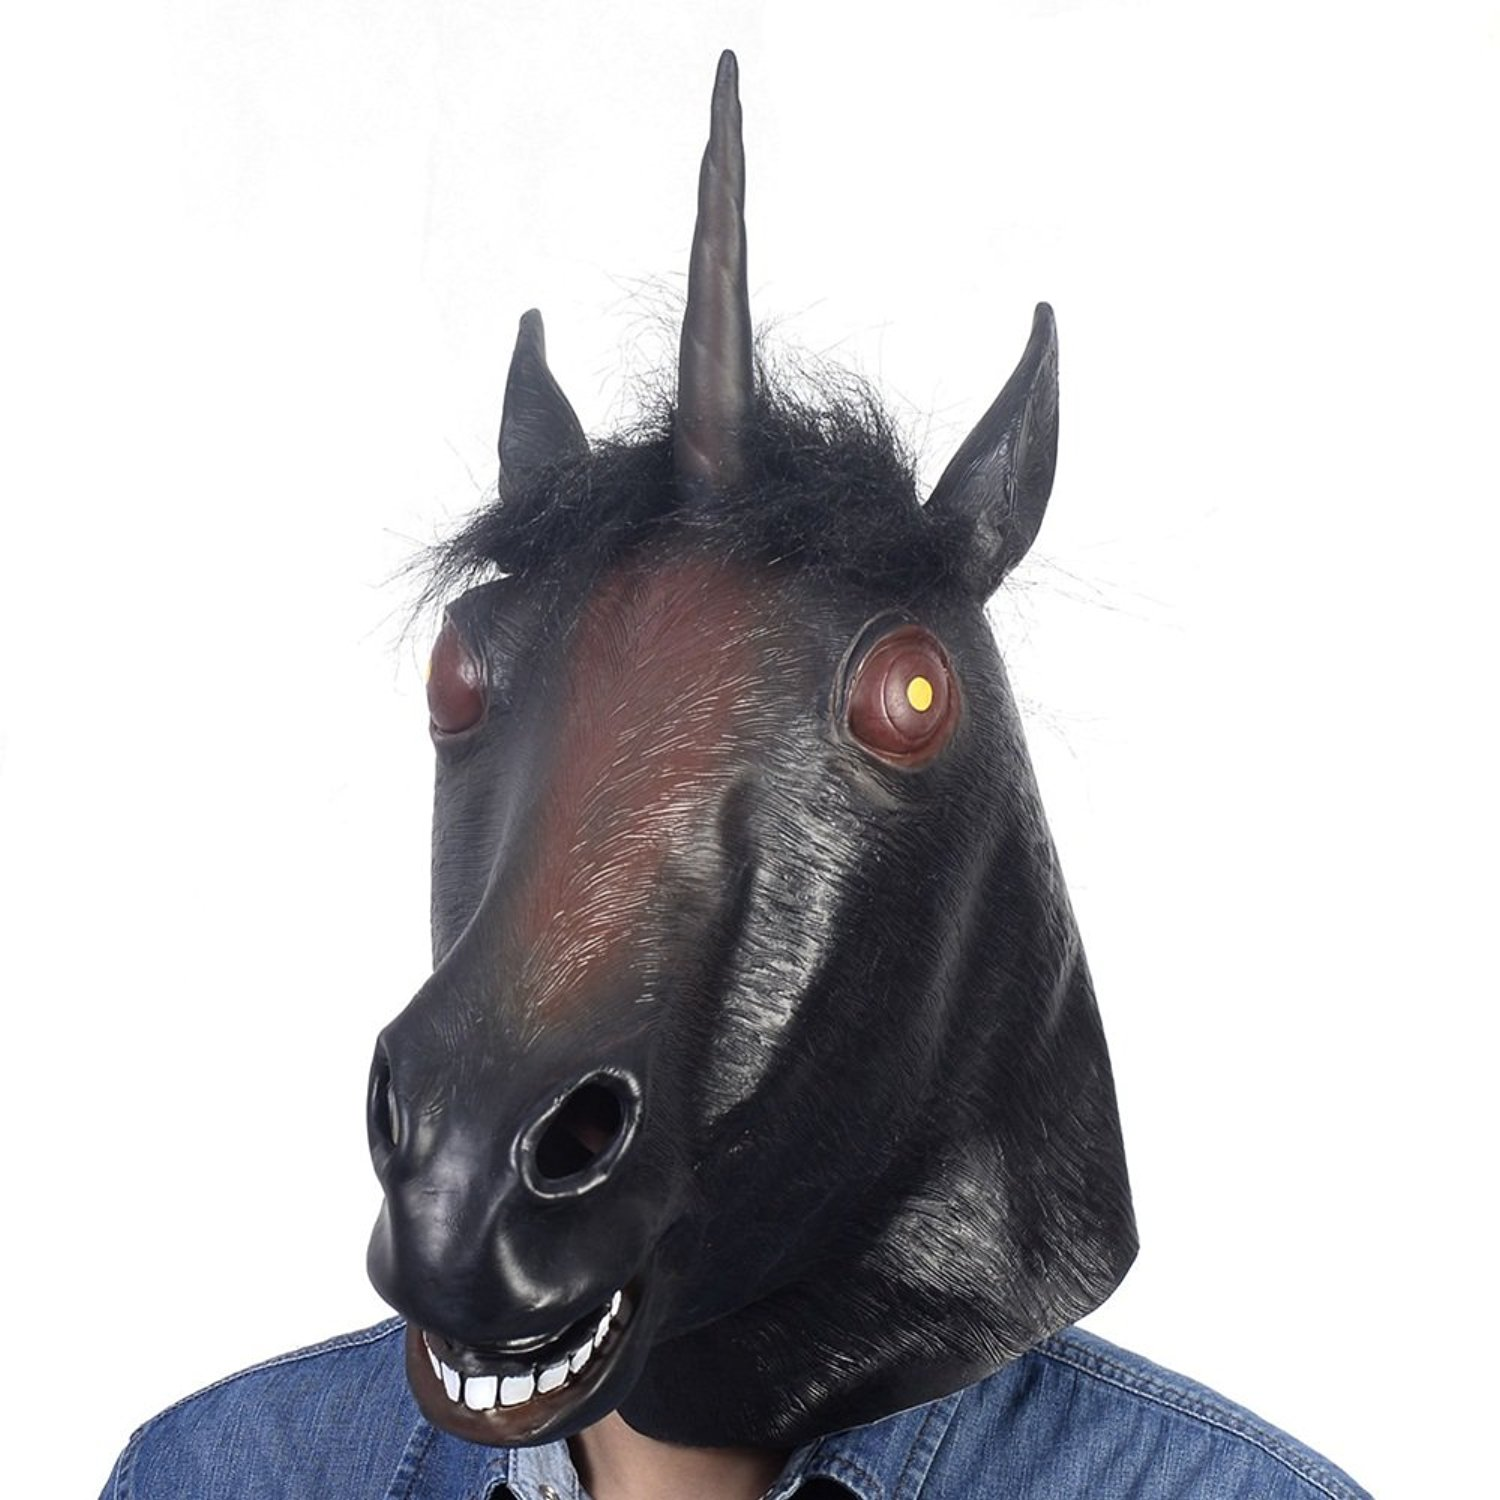 5ef2168c5a5e9 Get Quotations · Evil Unicorn Head Mask Black Latex Fun Party Rubber Animal  Costume Theater Prop Novelty